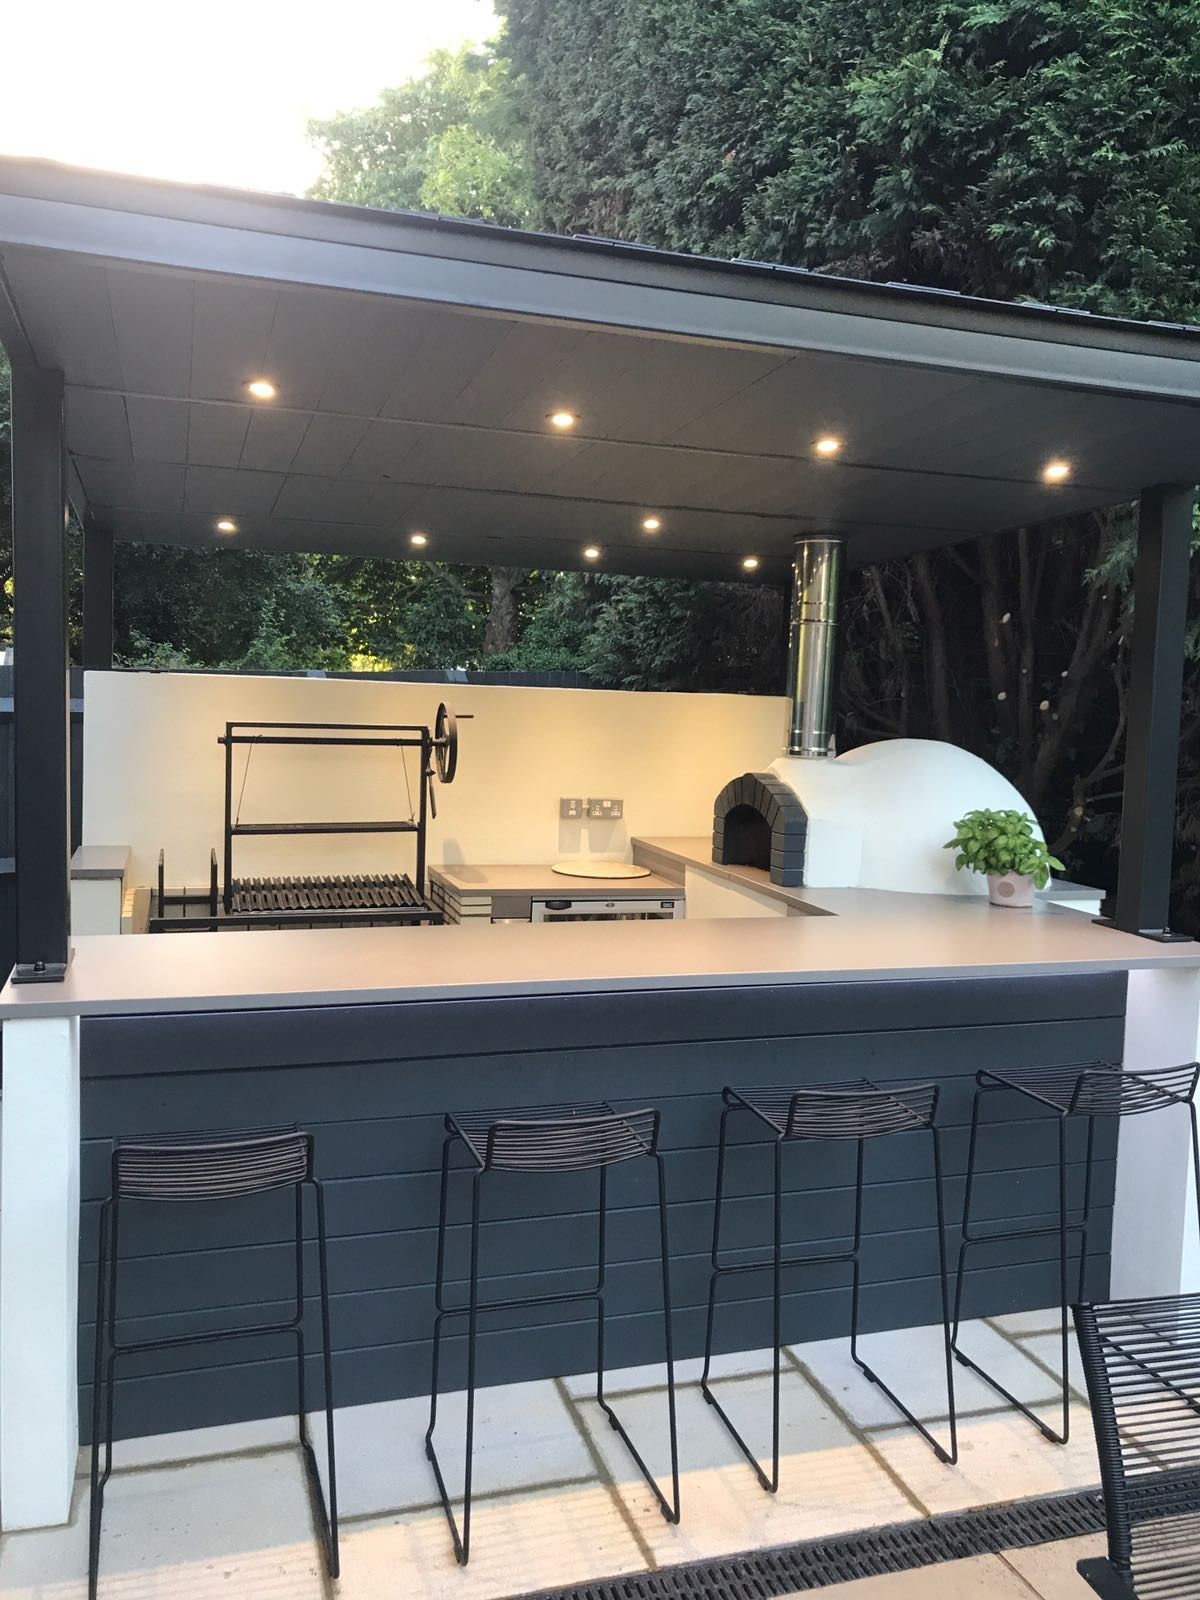 pizza oven outdoor kitchen fabricated steel frame above an outdoor